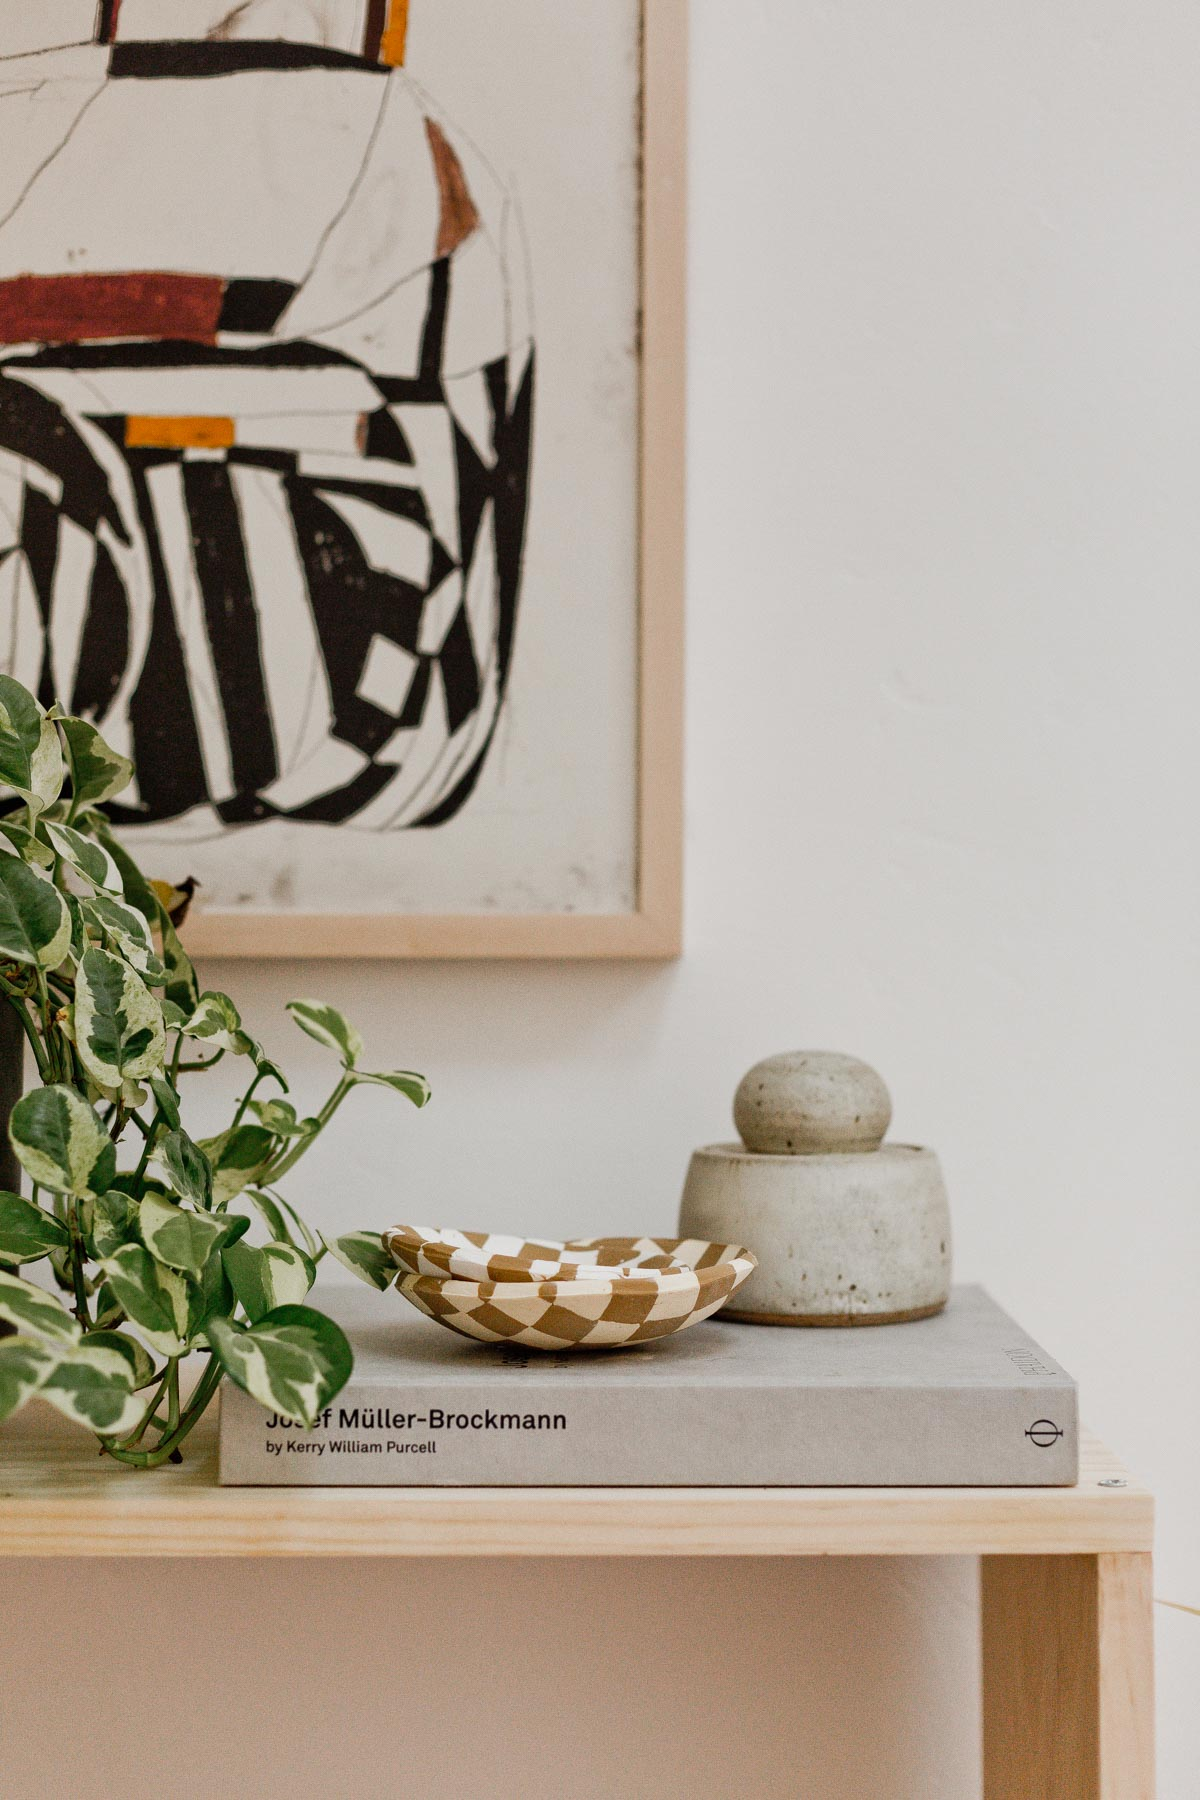 Modern, minimal table with abstract artwork and small objects.